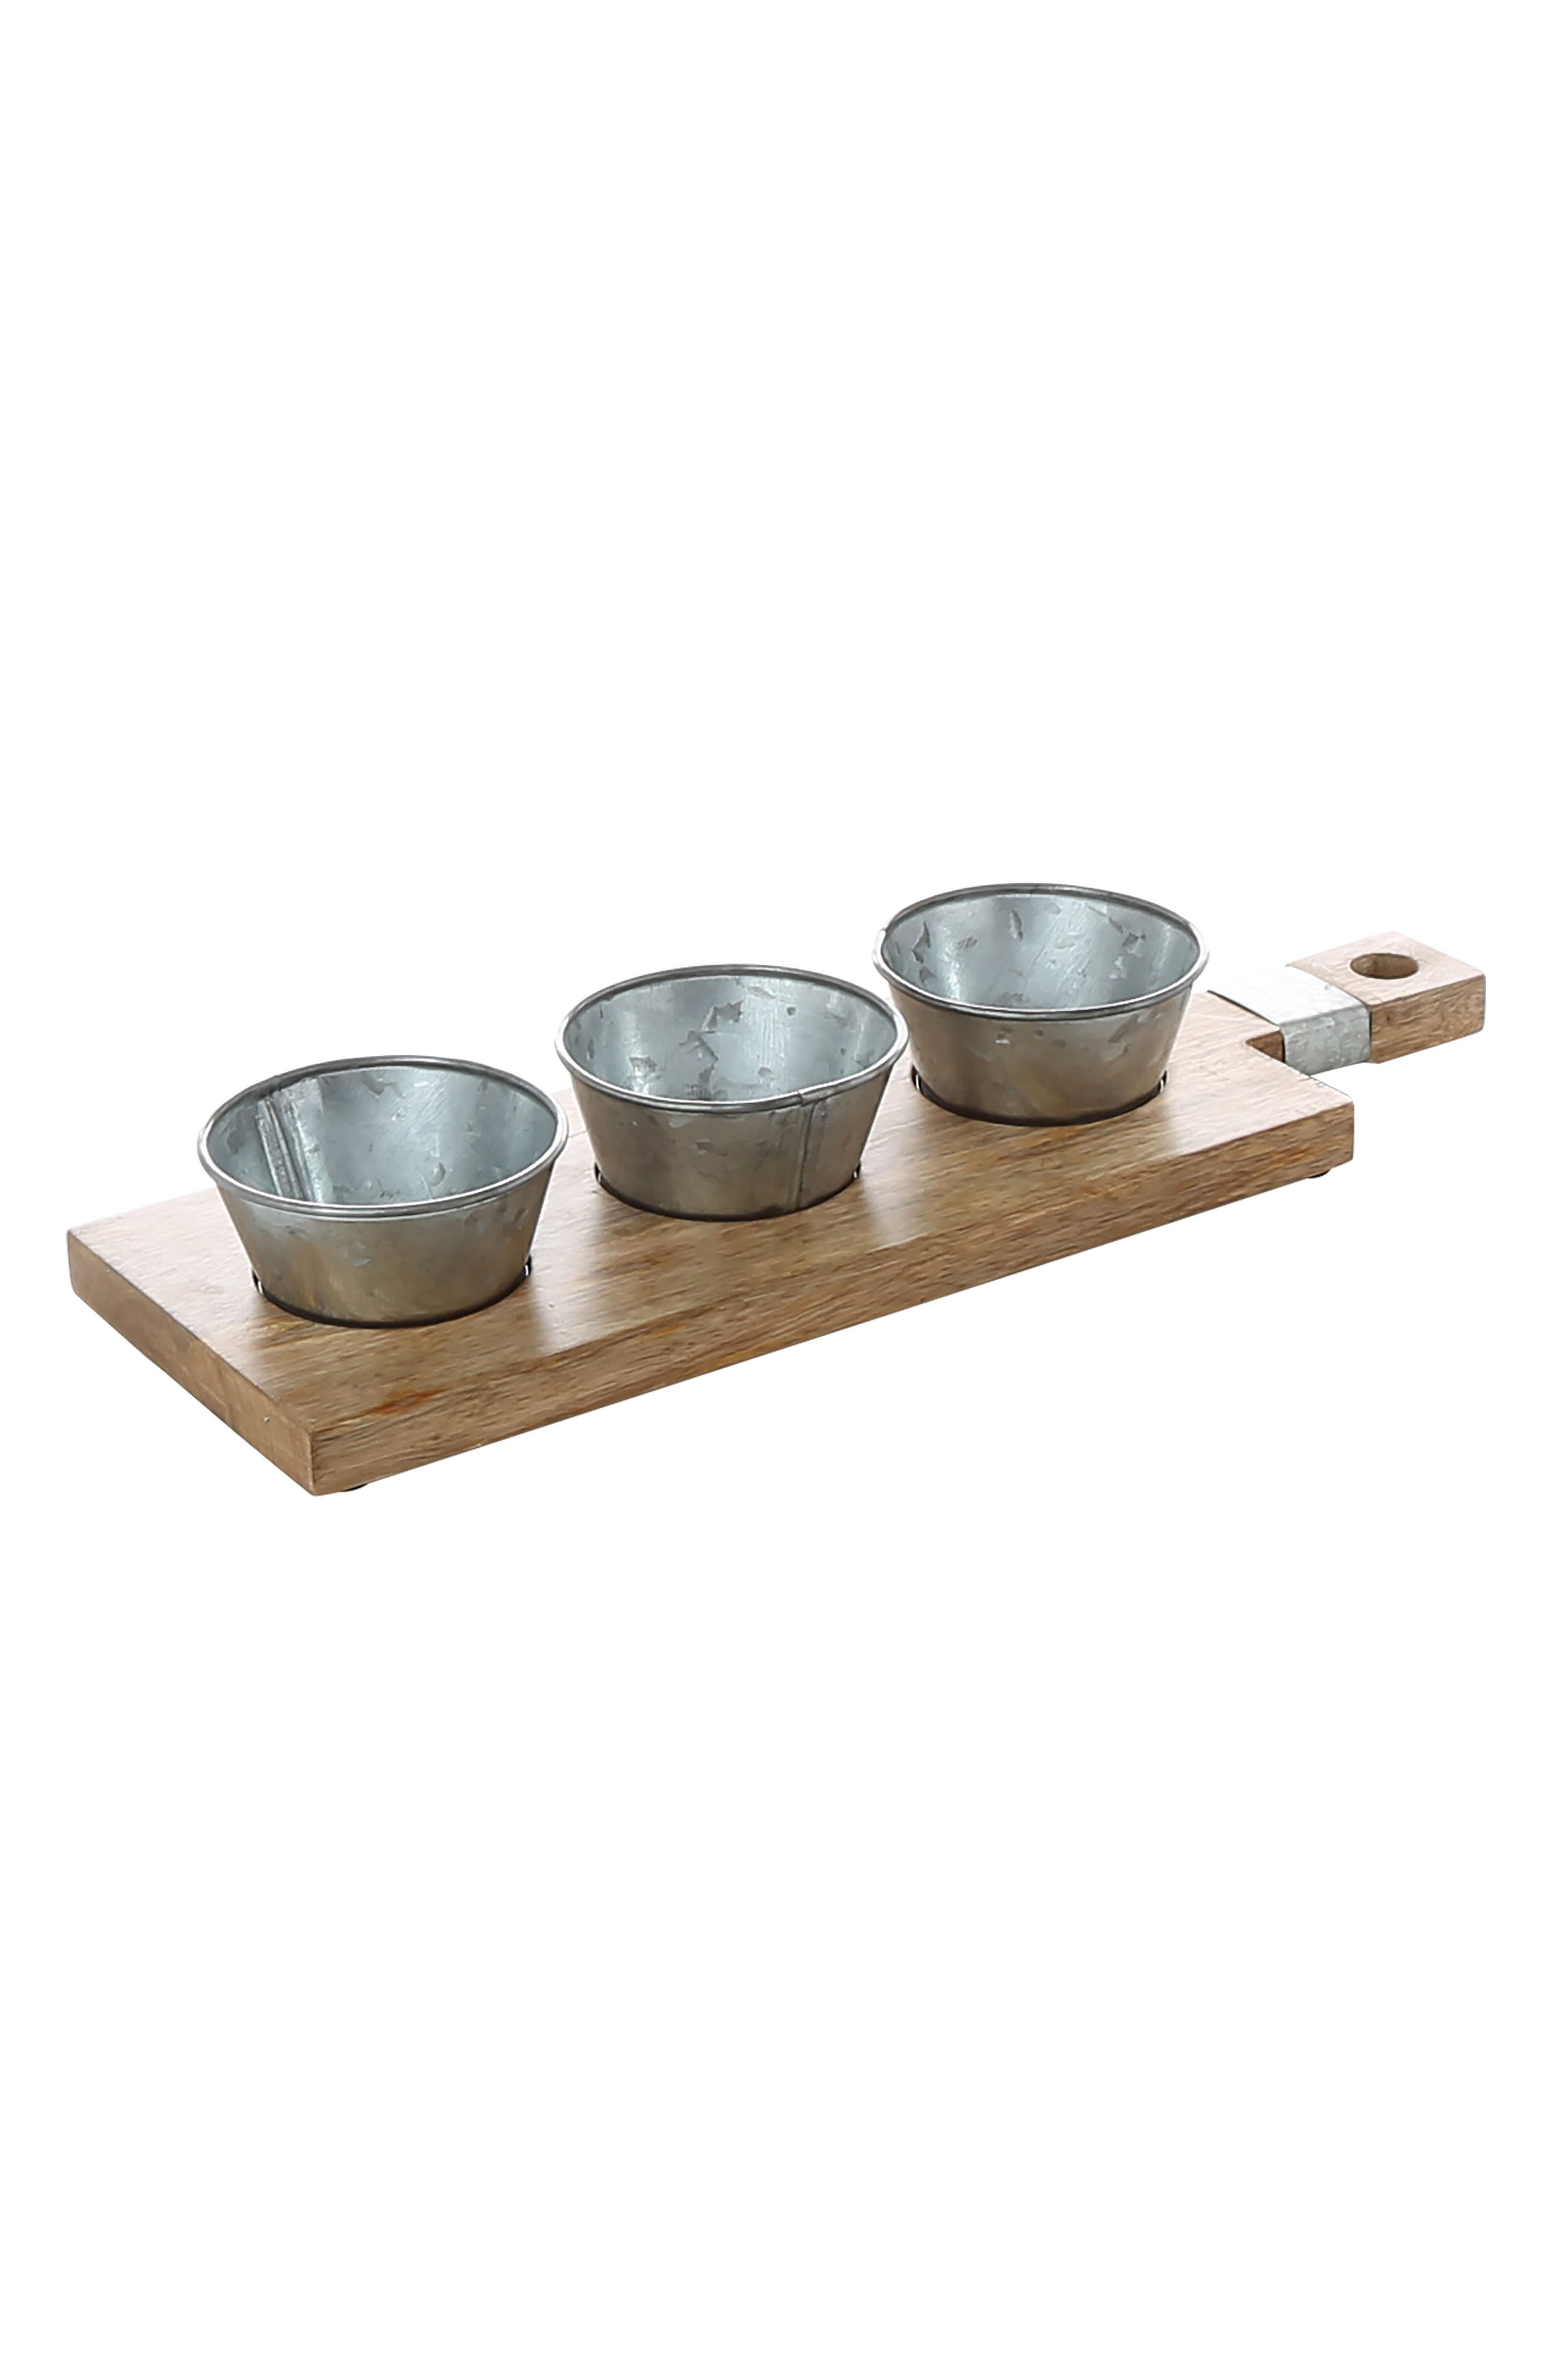 Thirstystone Condiment Tray with Galvanized Bowls